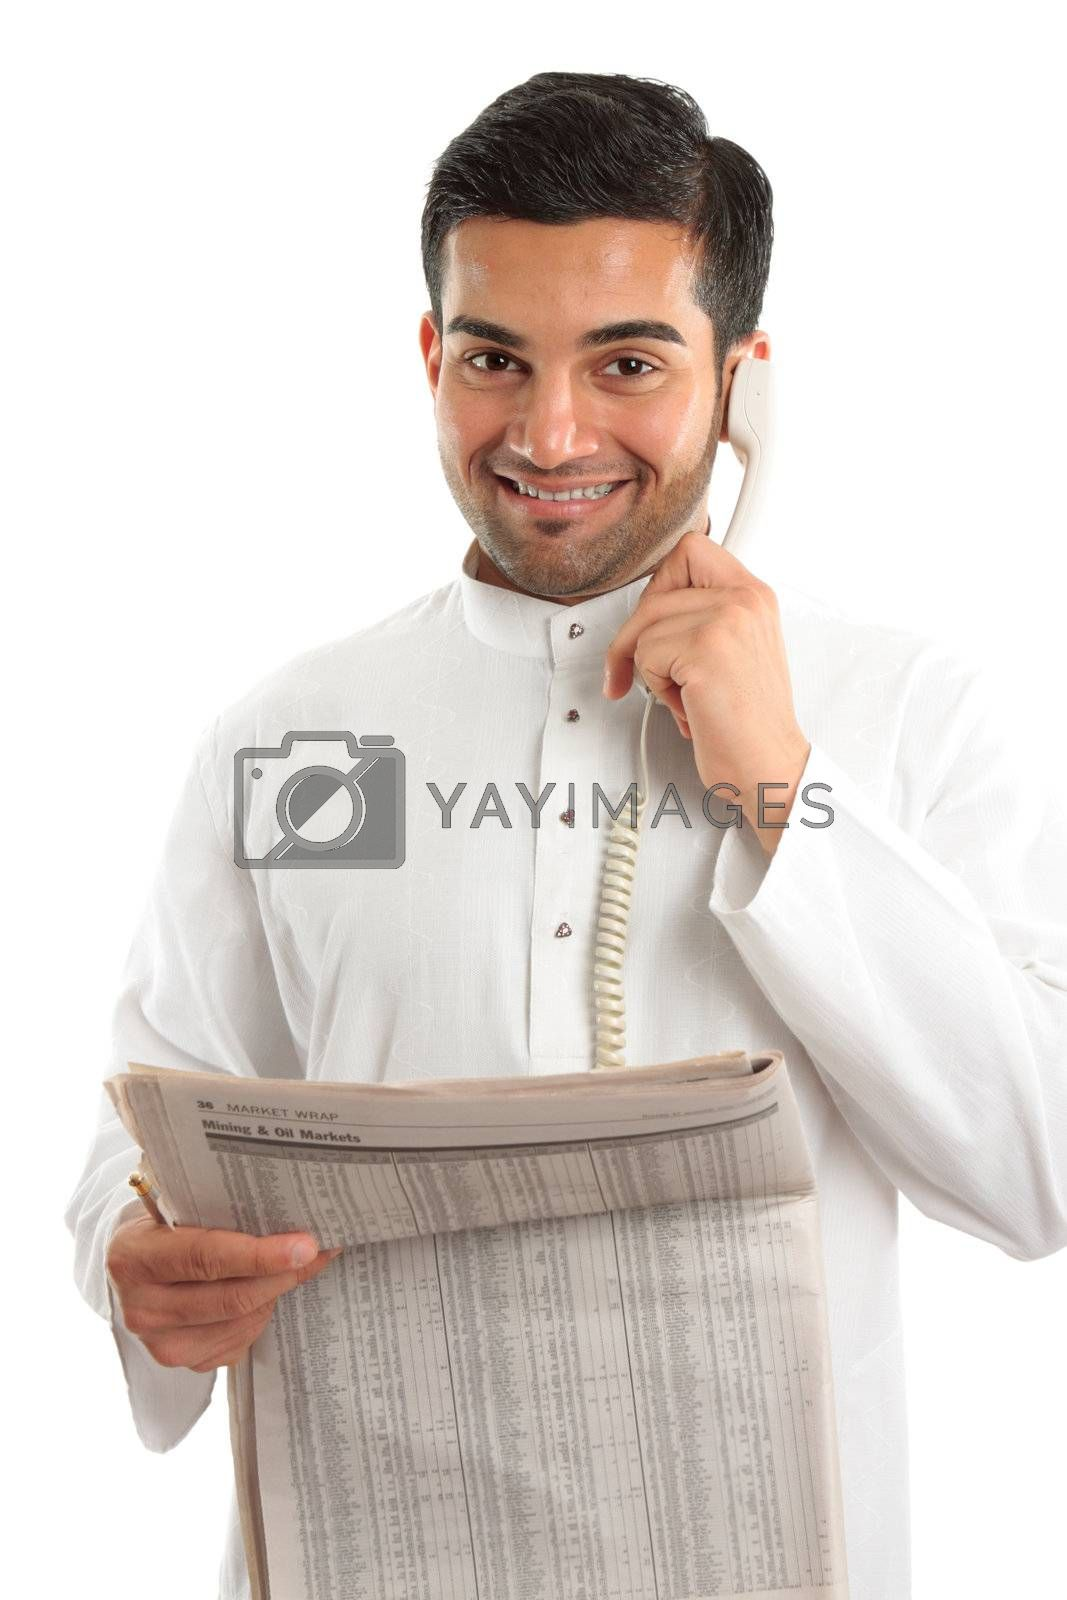 An ethnic italian / arab mixed race businessmanwearing traditional middle eastern clothing.  He is on the telephone and holding a newspaper at finance section.  White background.